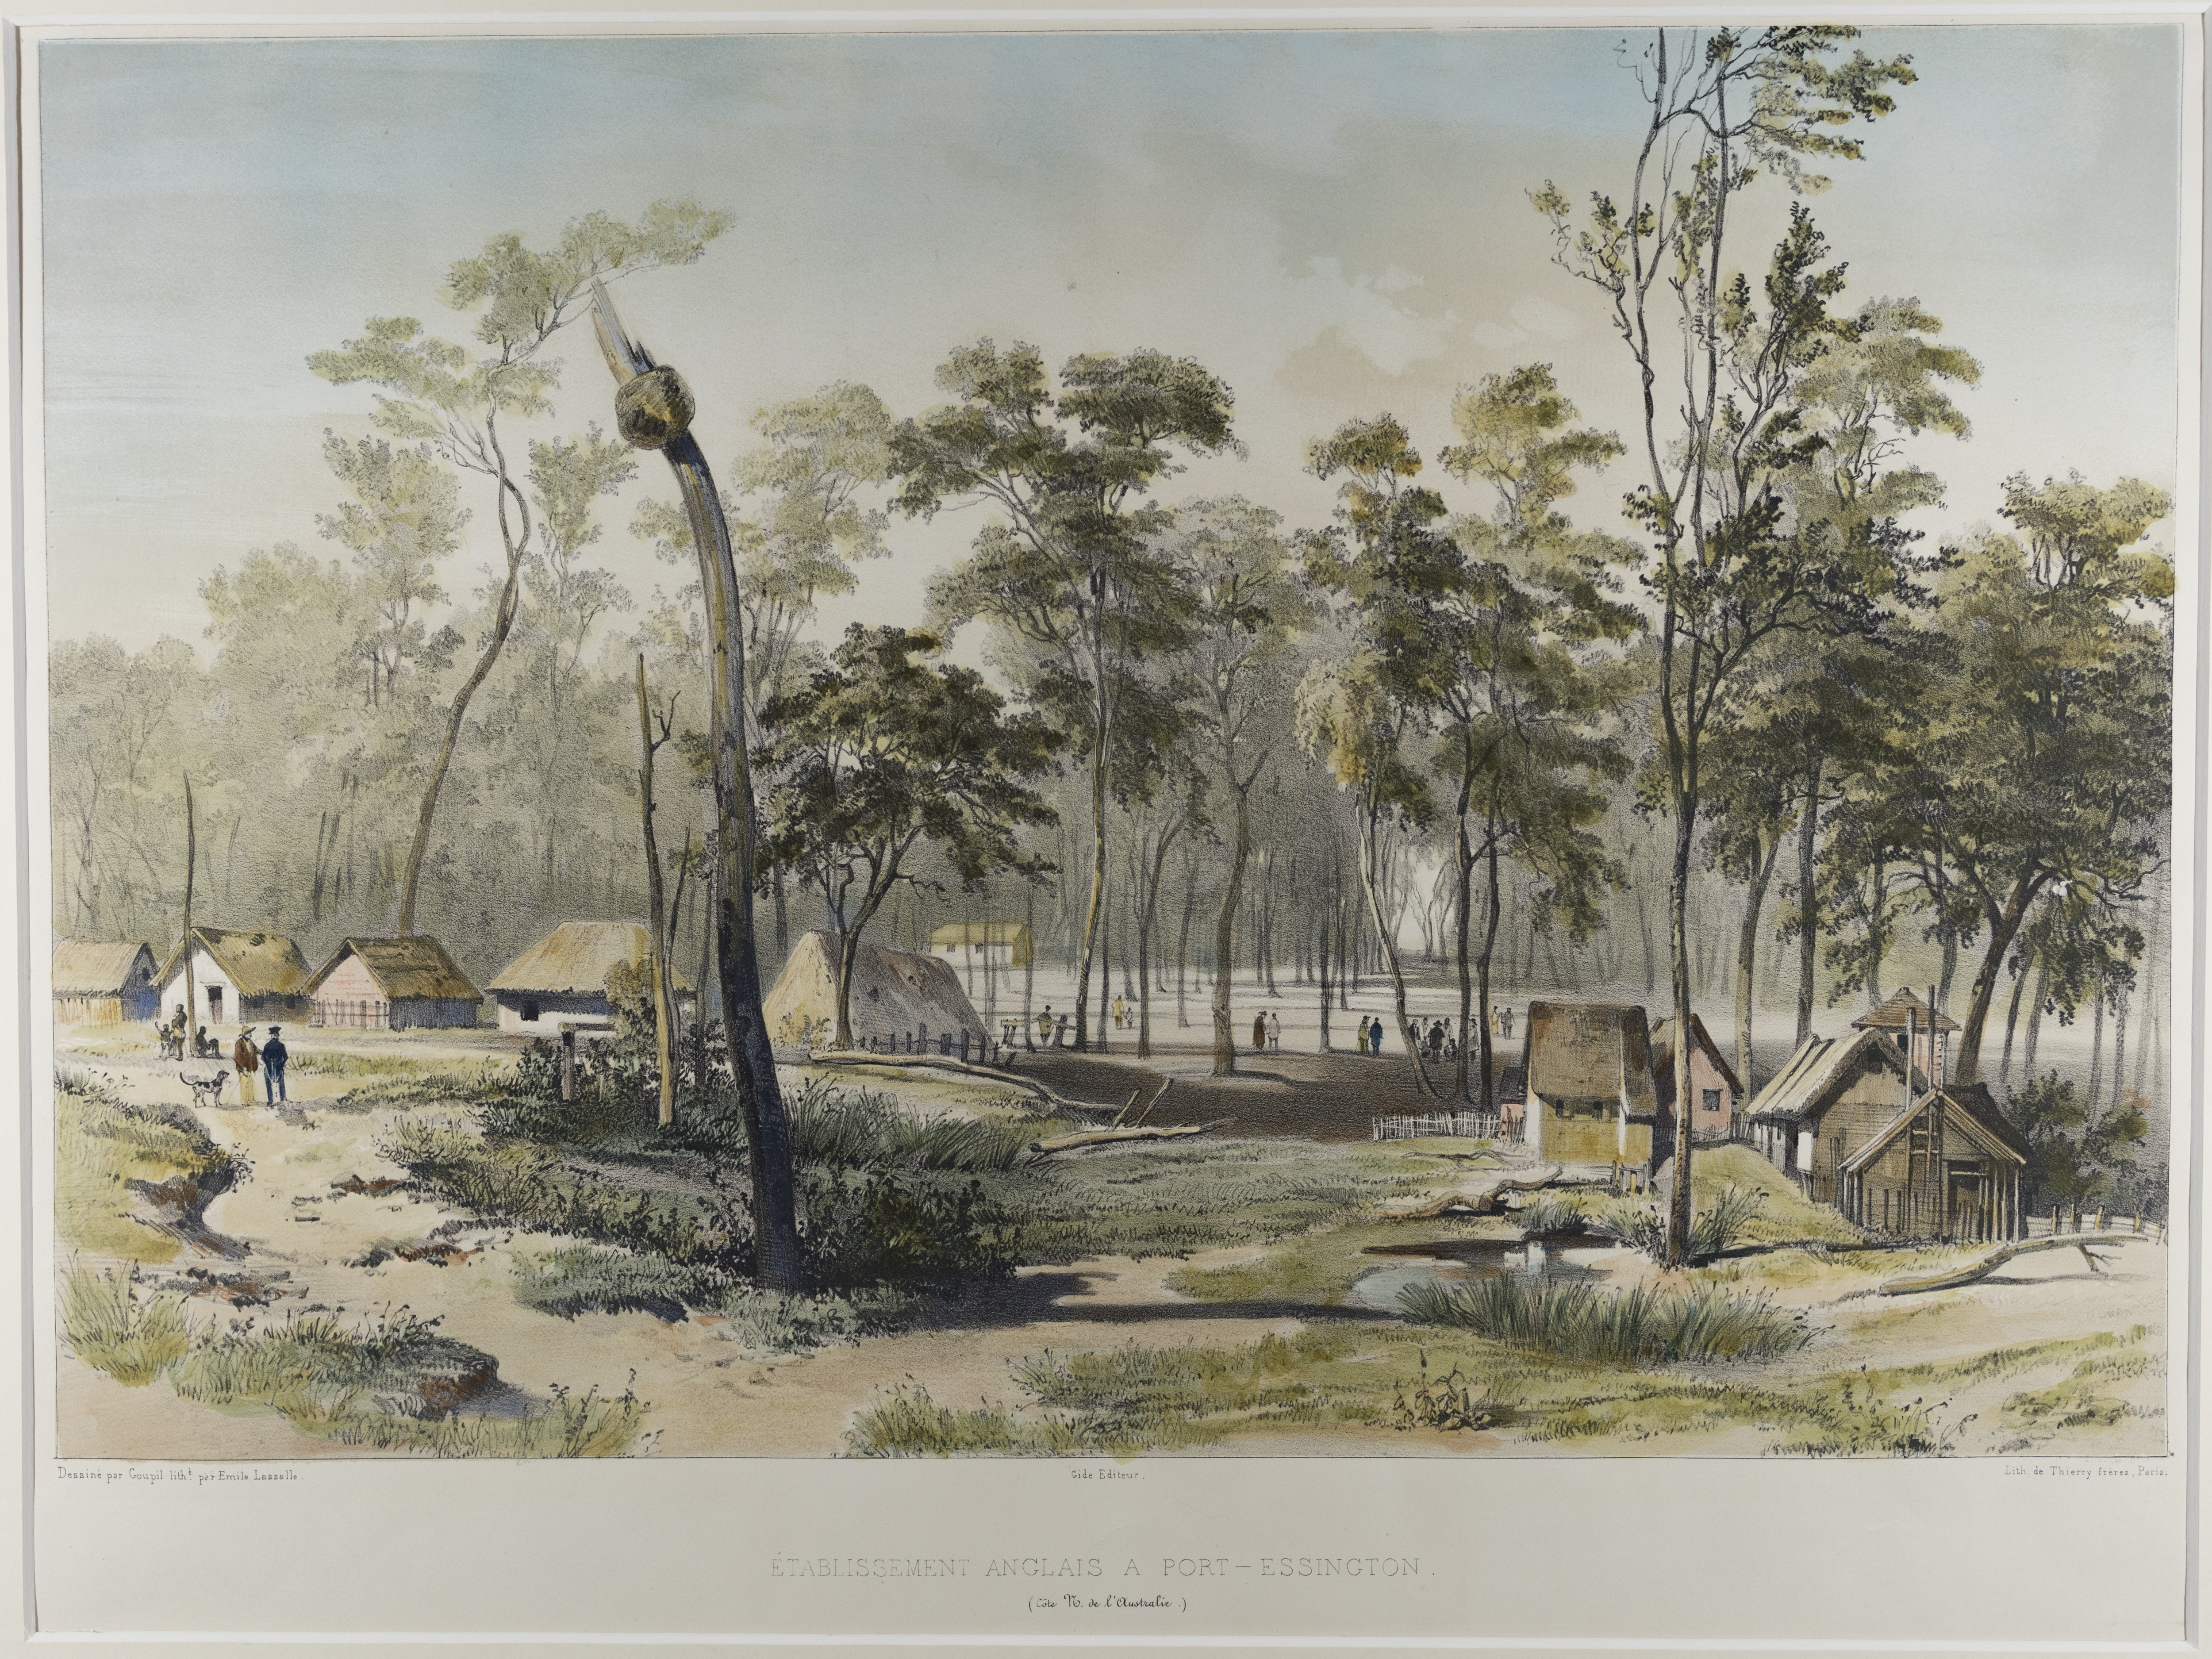 Coloured print depicting a number of thatched buildings in a lightly wooded area.